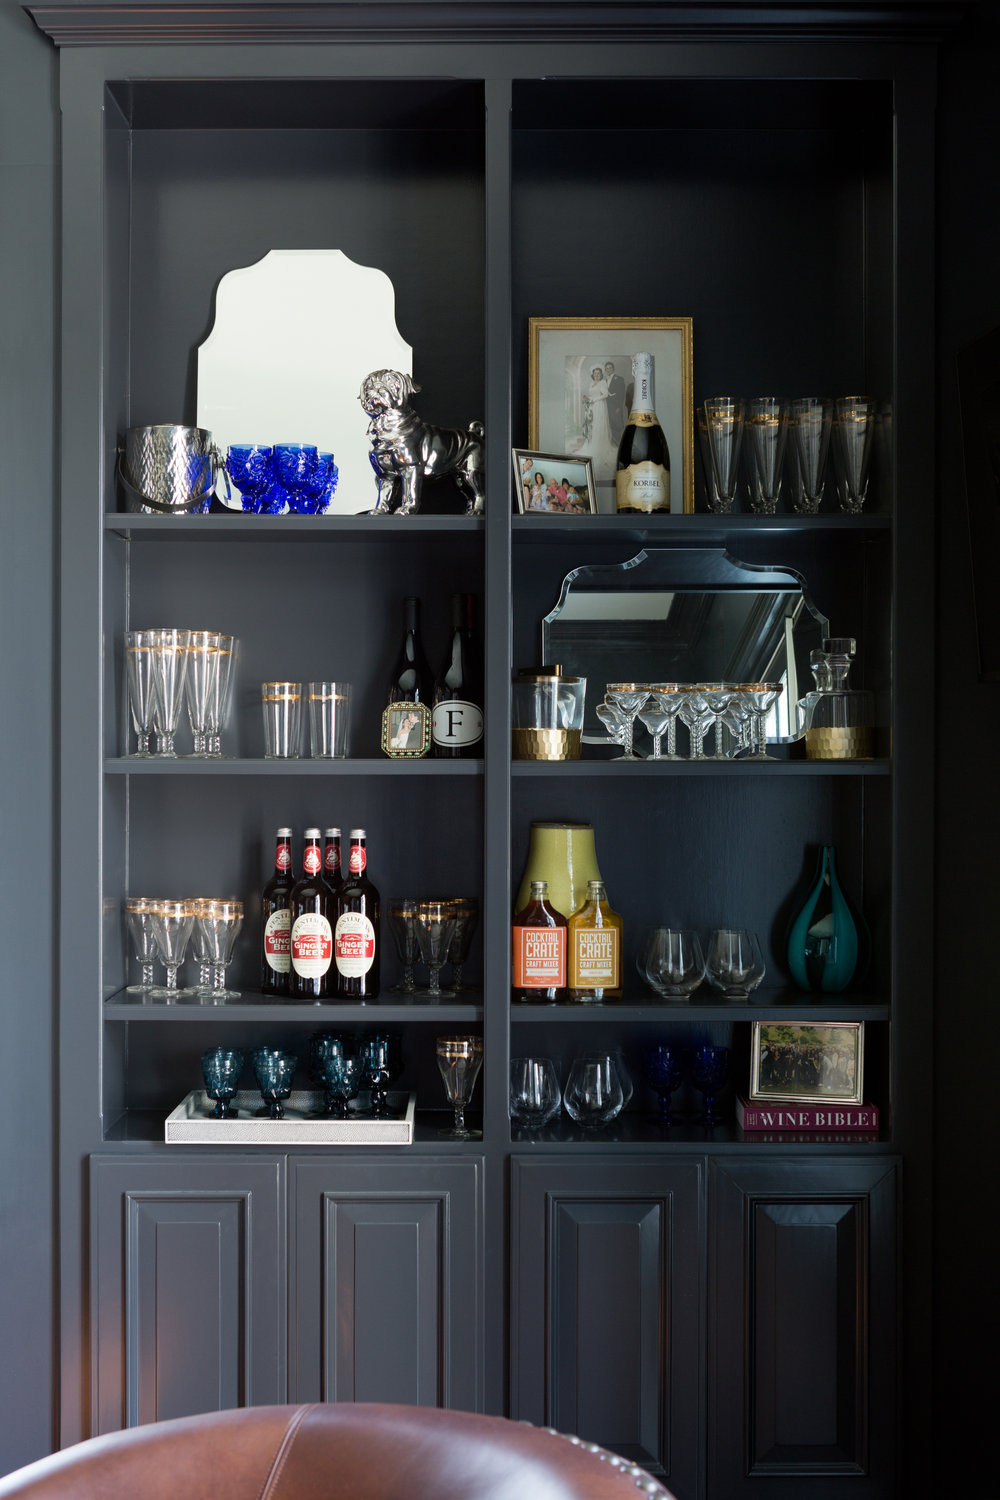 Styling the shelves with barware made a huge difference in making the room feel finished.